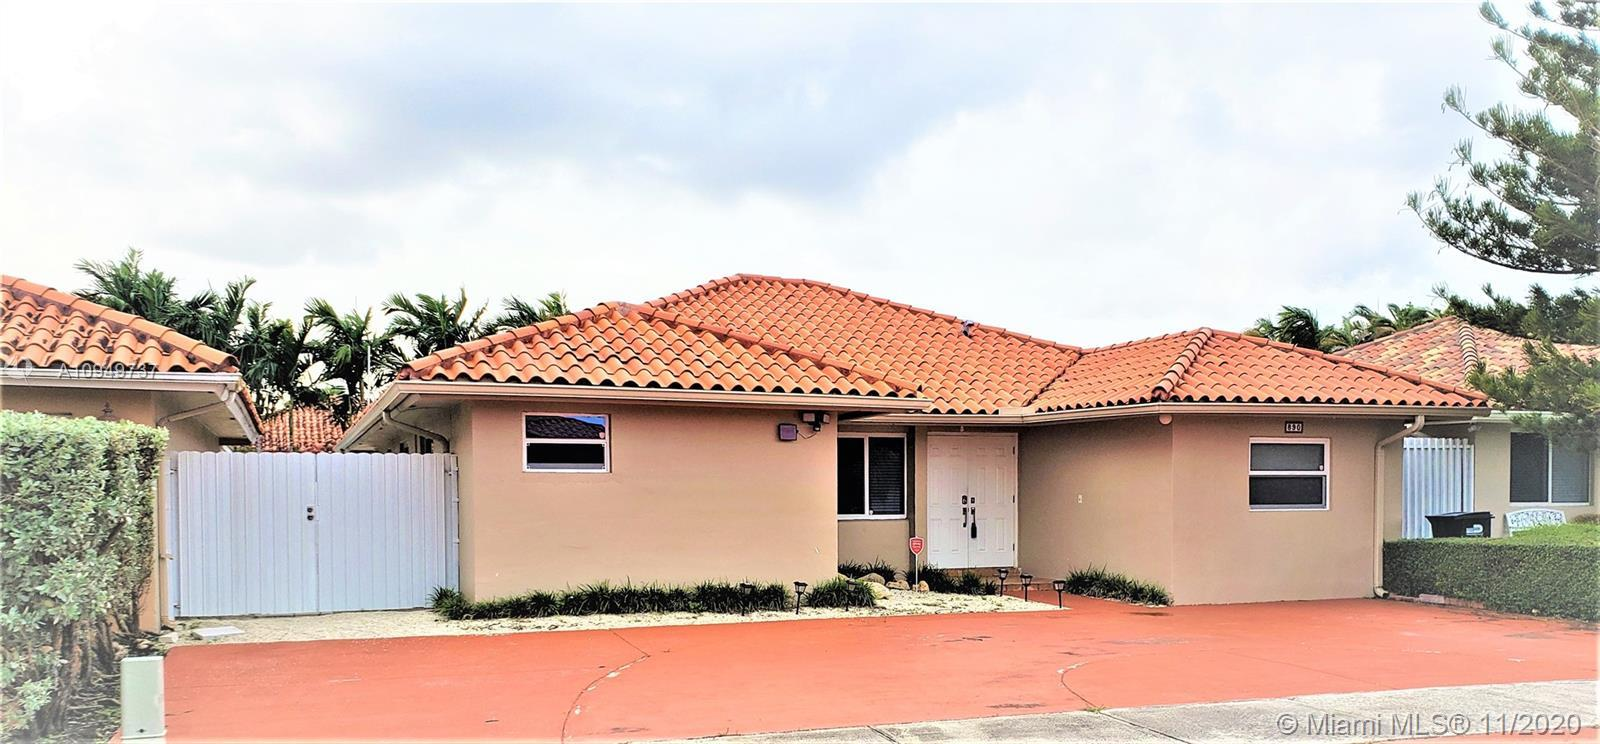 Beautiful  4/3 bath property, ready to move in, with no HOA approval. The property consisting of 3/2 with in-law quarter 1/1 with own bathroom to bring your love ones. must see.